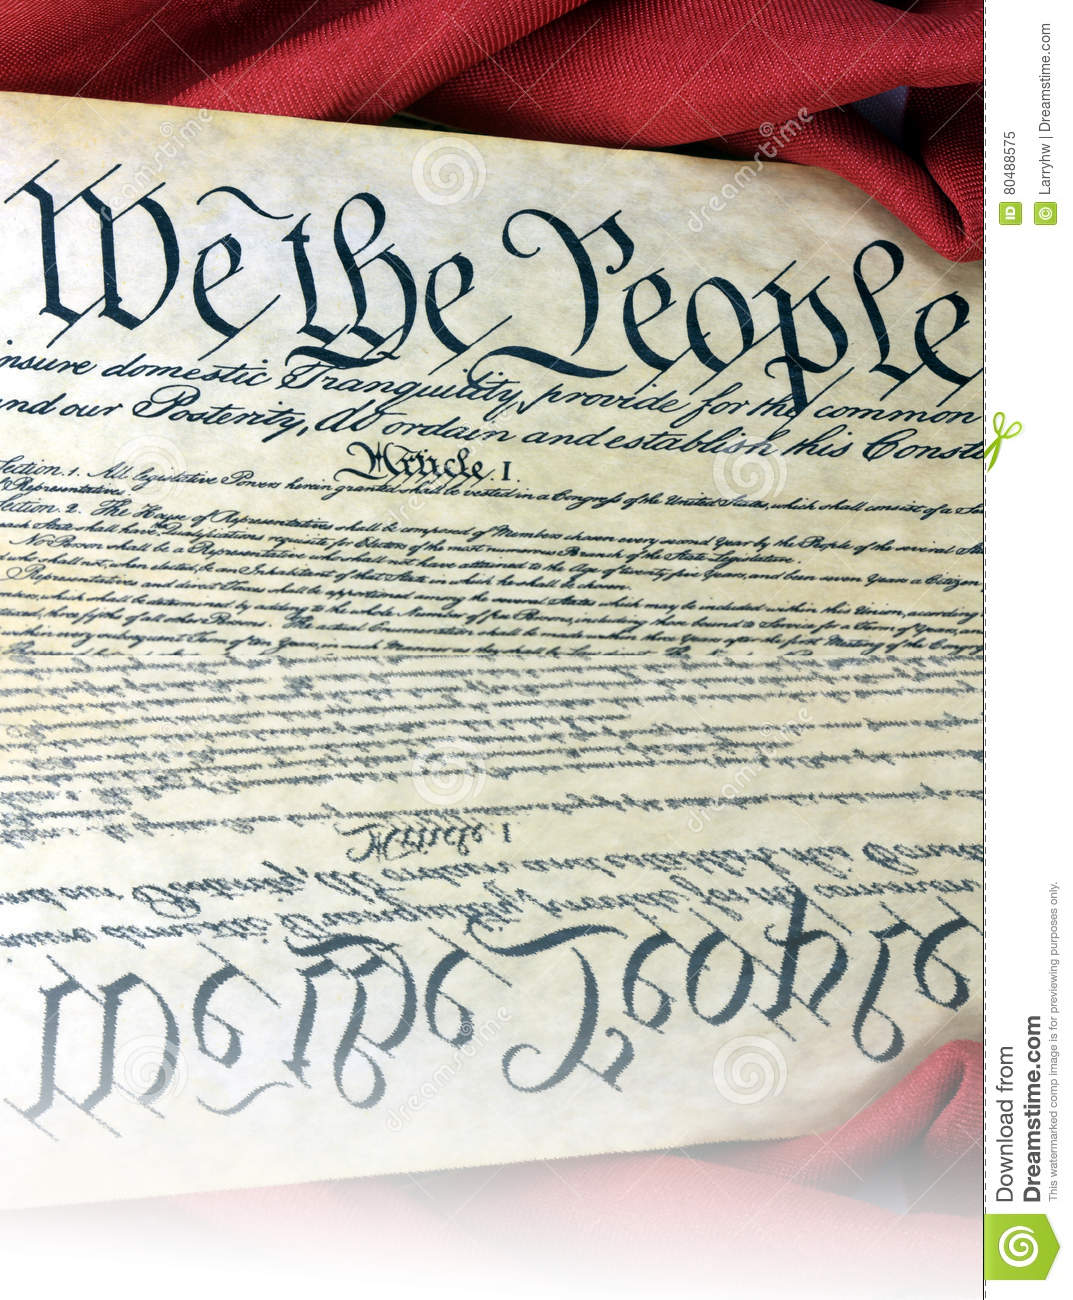 a description of the amendments in the united states bill of rights and the origins of the constitut The origins of the constitution, the government that failed, the philadelphia convention, the agenda in philadelphia, the madisonian model, ratifying the constitution, constitutional change, and understanding the constitution.